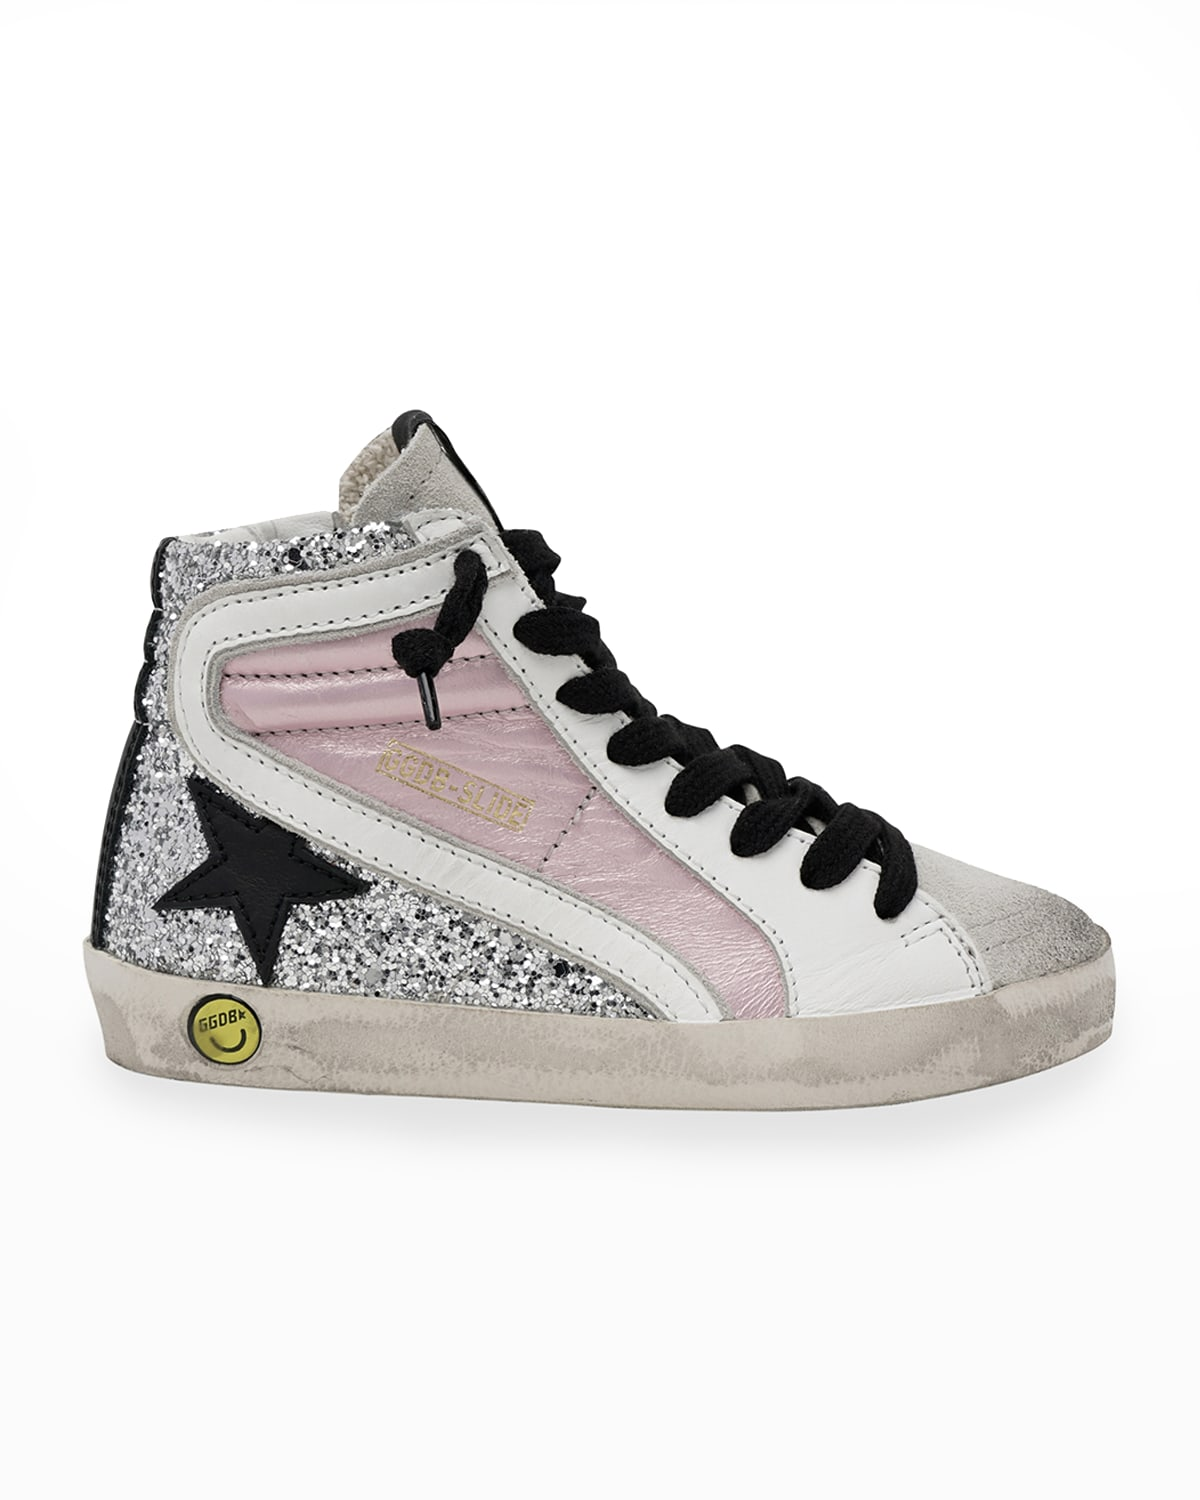 Slide Laminated Leather & Glitter High-Top Sneakers